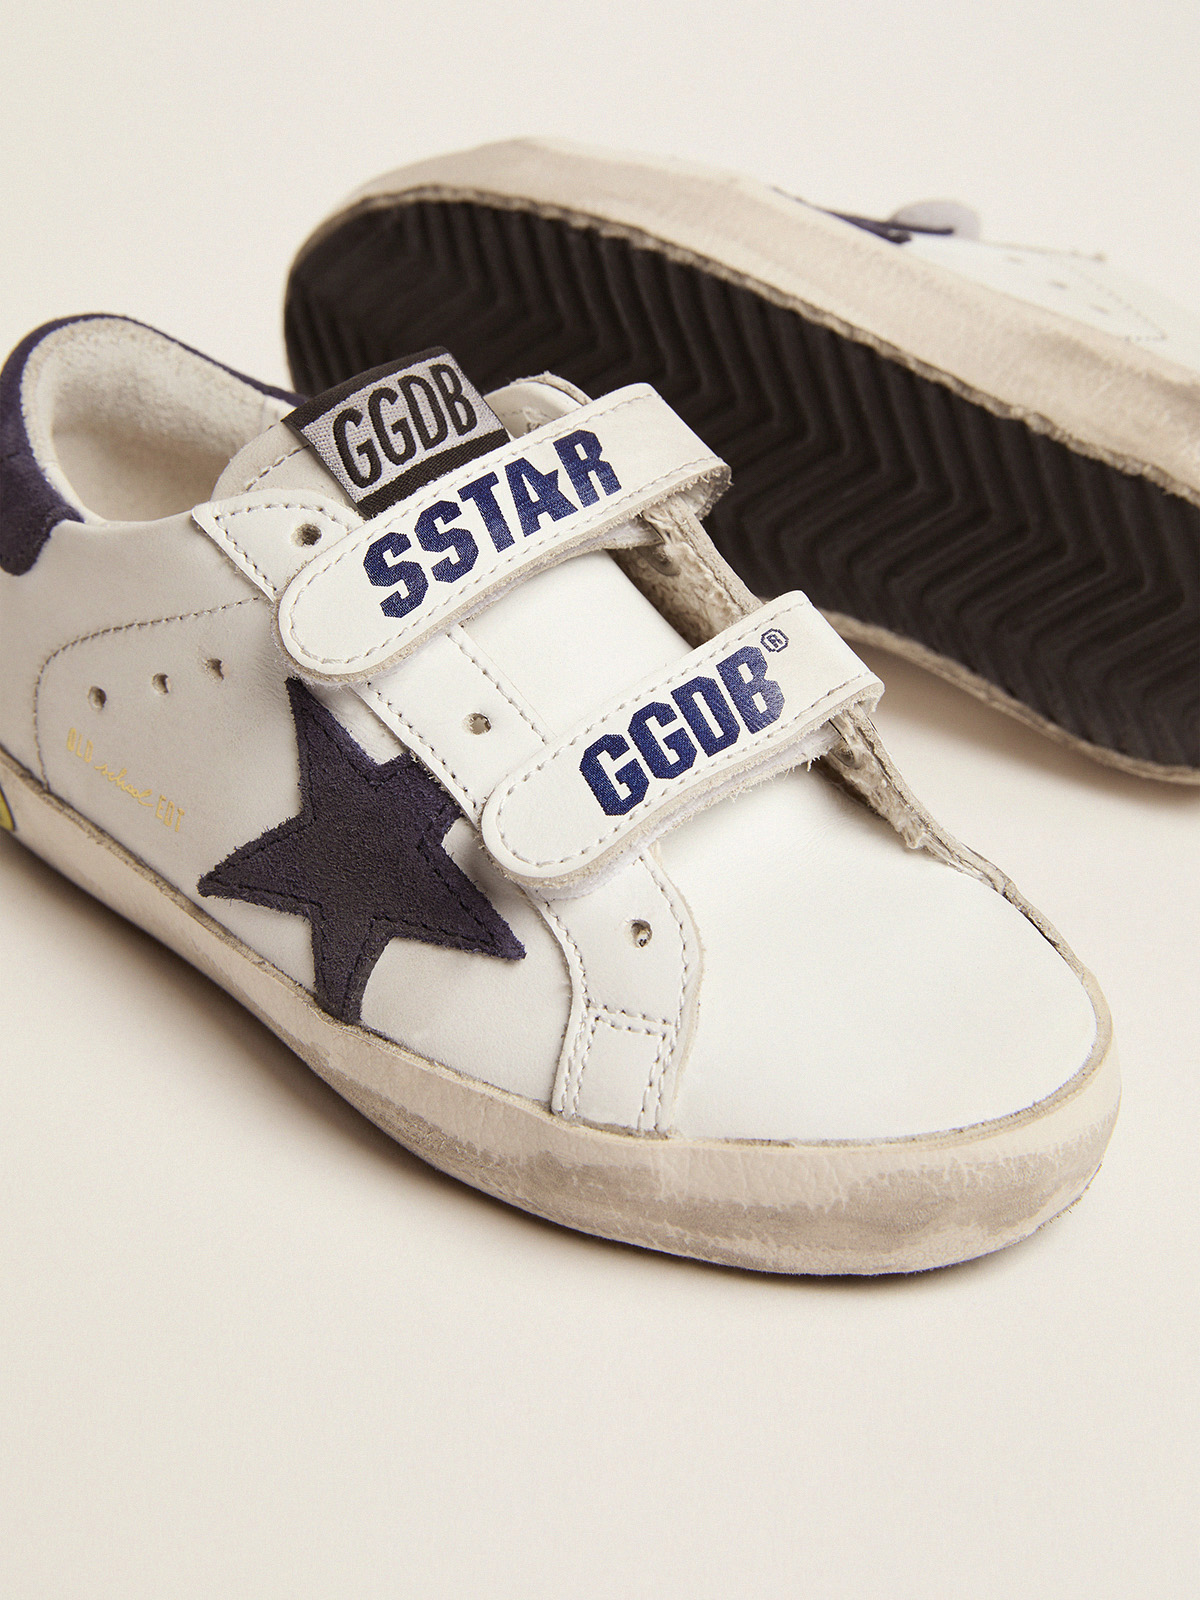 Golden Goose - Old School sneakers in leather with suede star and heel tab in